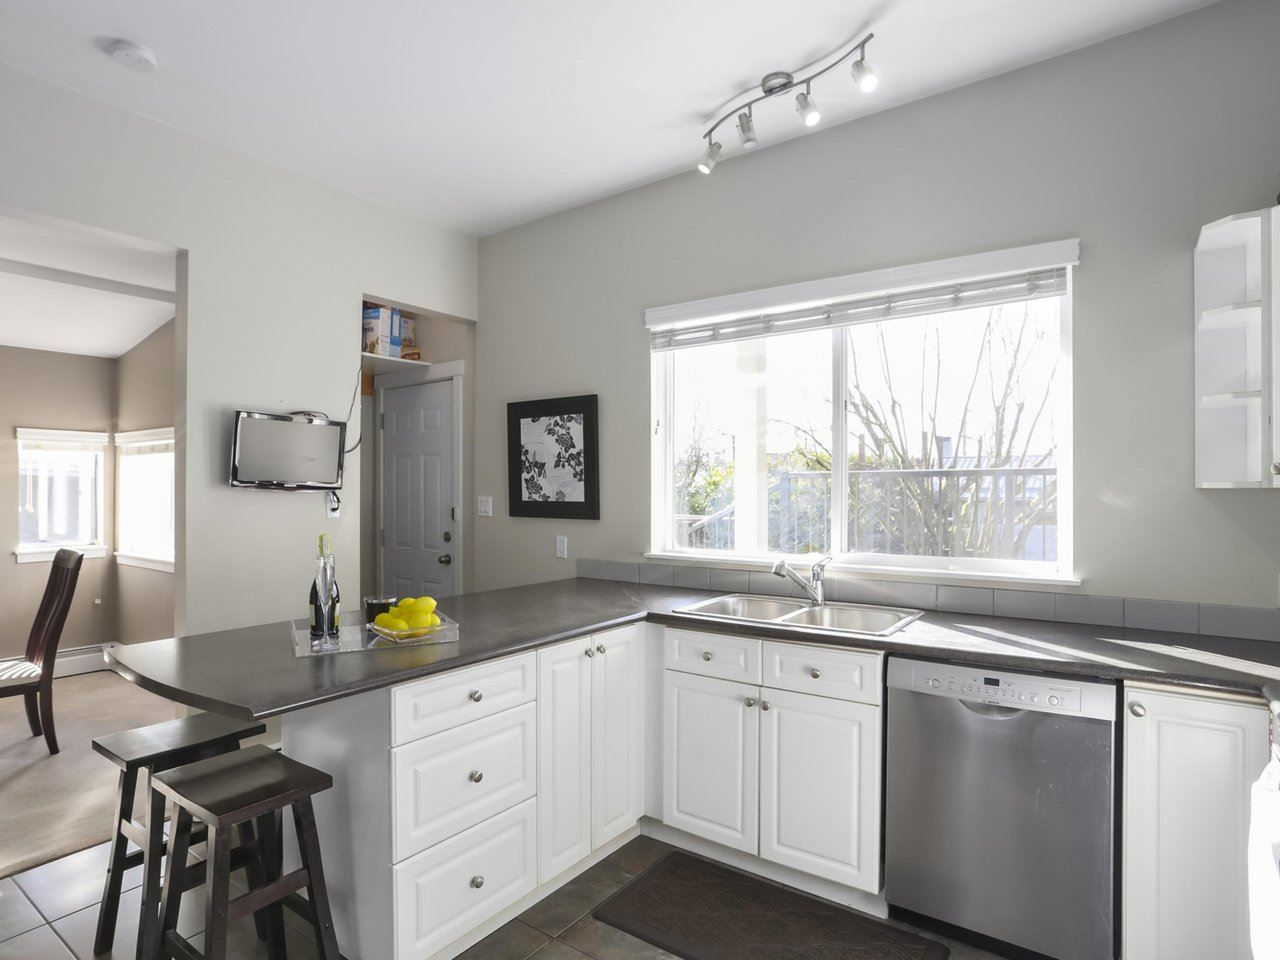 Photo 5: Photos: 325 W KINGS Road in North Vancouver: Upper Lonsdale House for sale : MLS®# R2443642